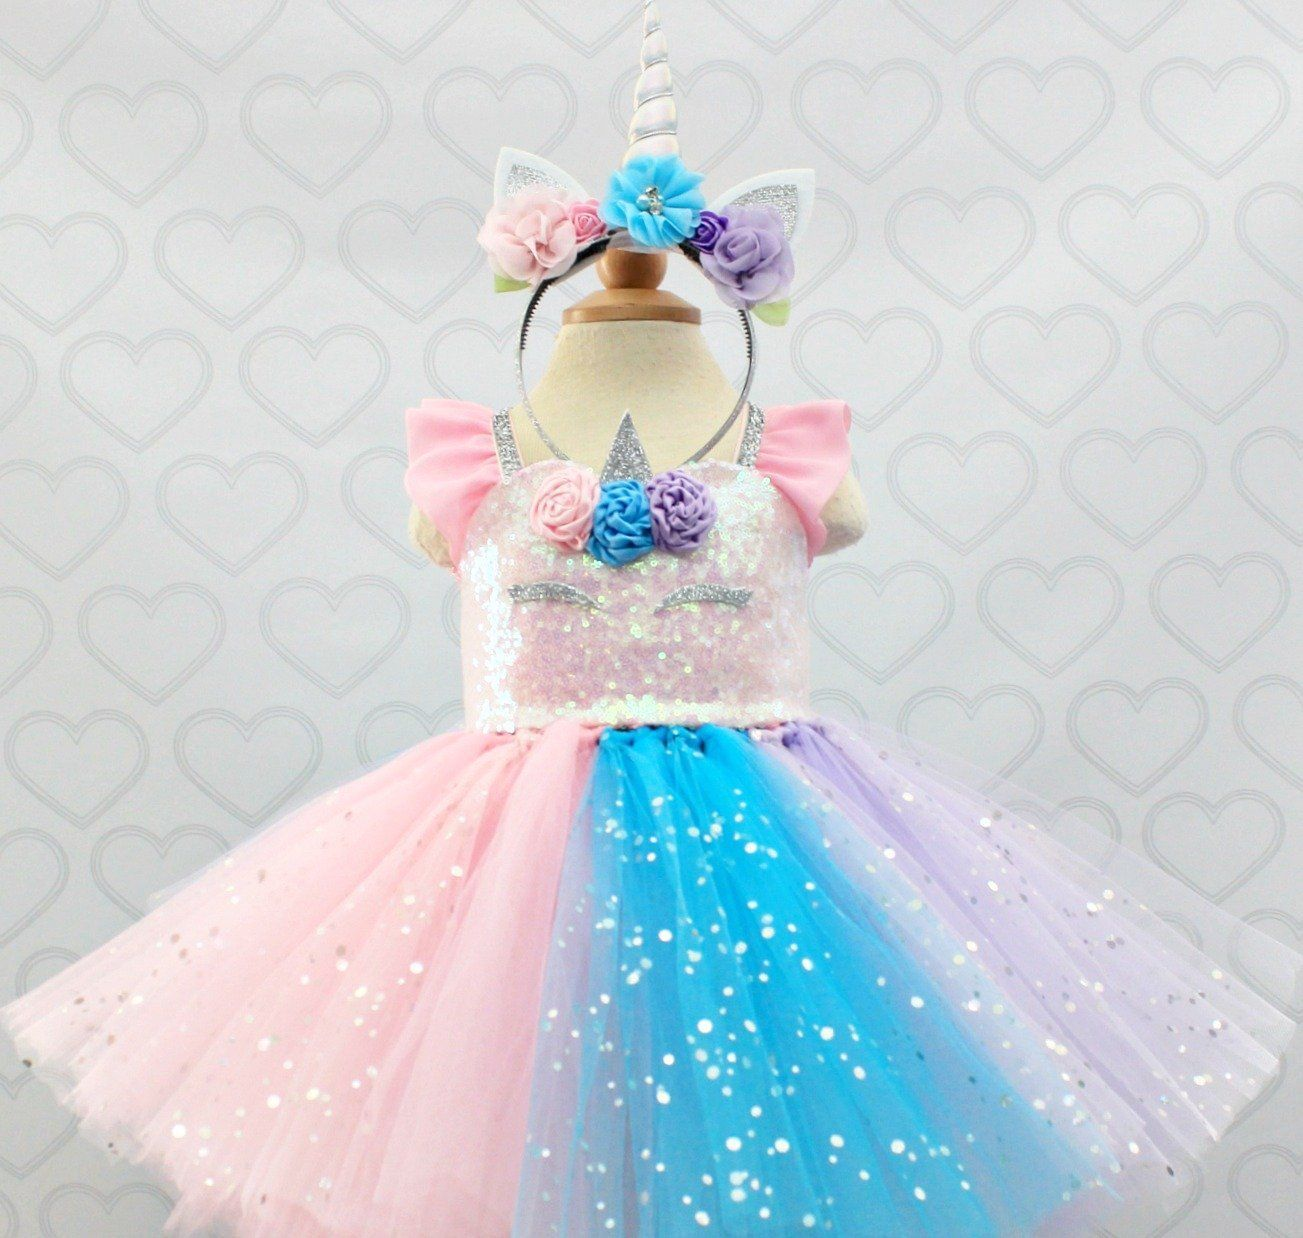 e2d544015c8 Unicorn dress-unicorn tutu dress-unicorn birthday dress-unicorn tutu-unicorn  outfit-Sparkle